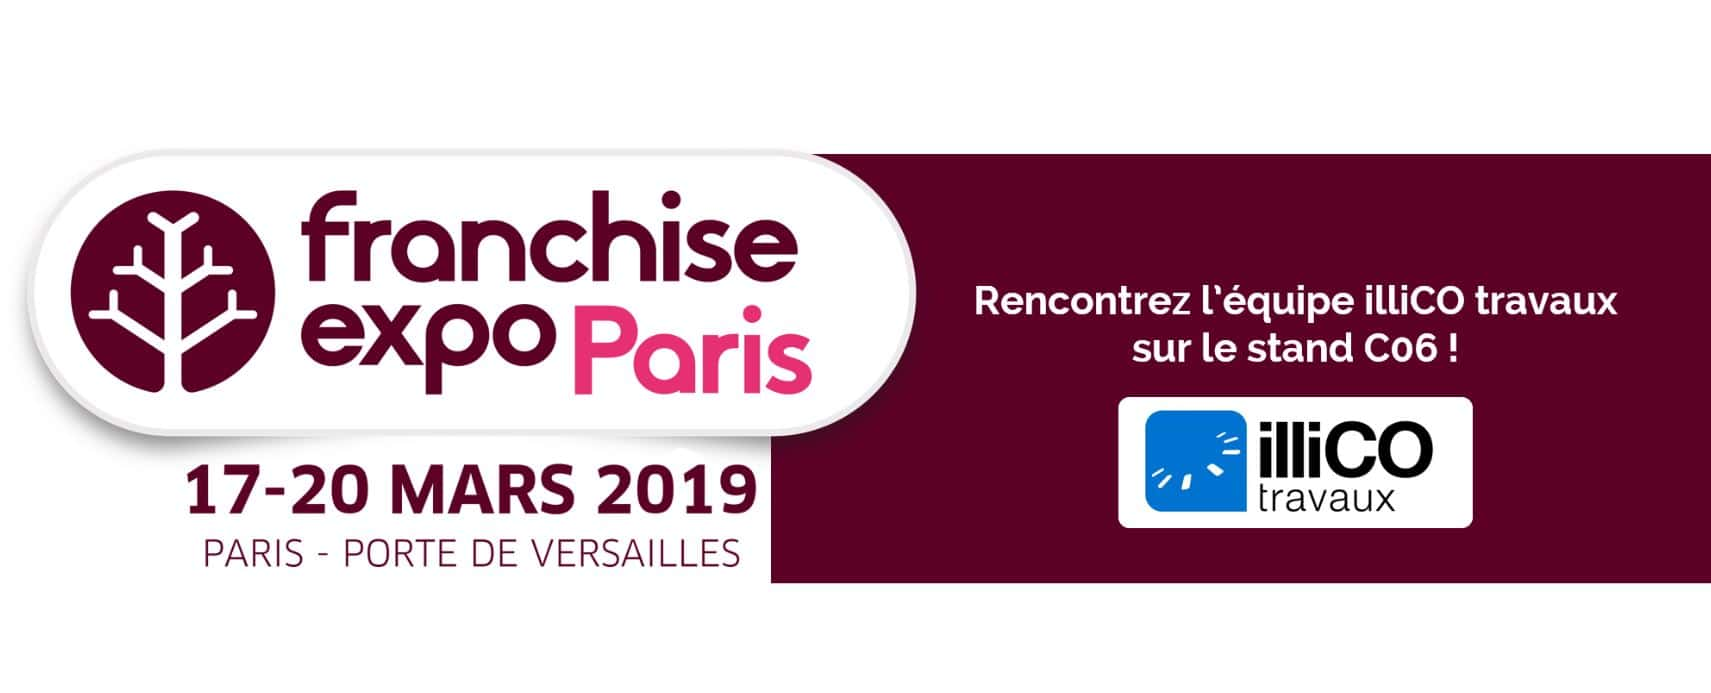 Salon Franchise Expo de Paris : illiCO travaux vous attend !